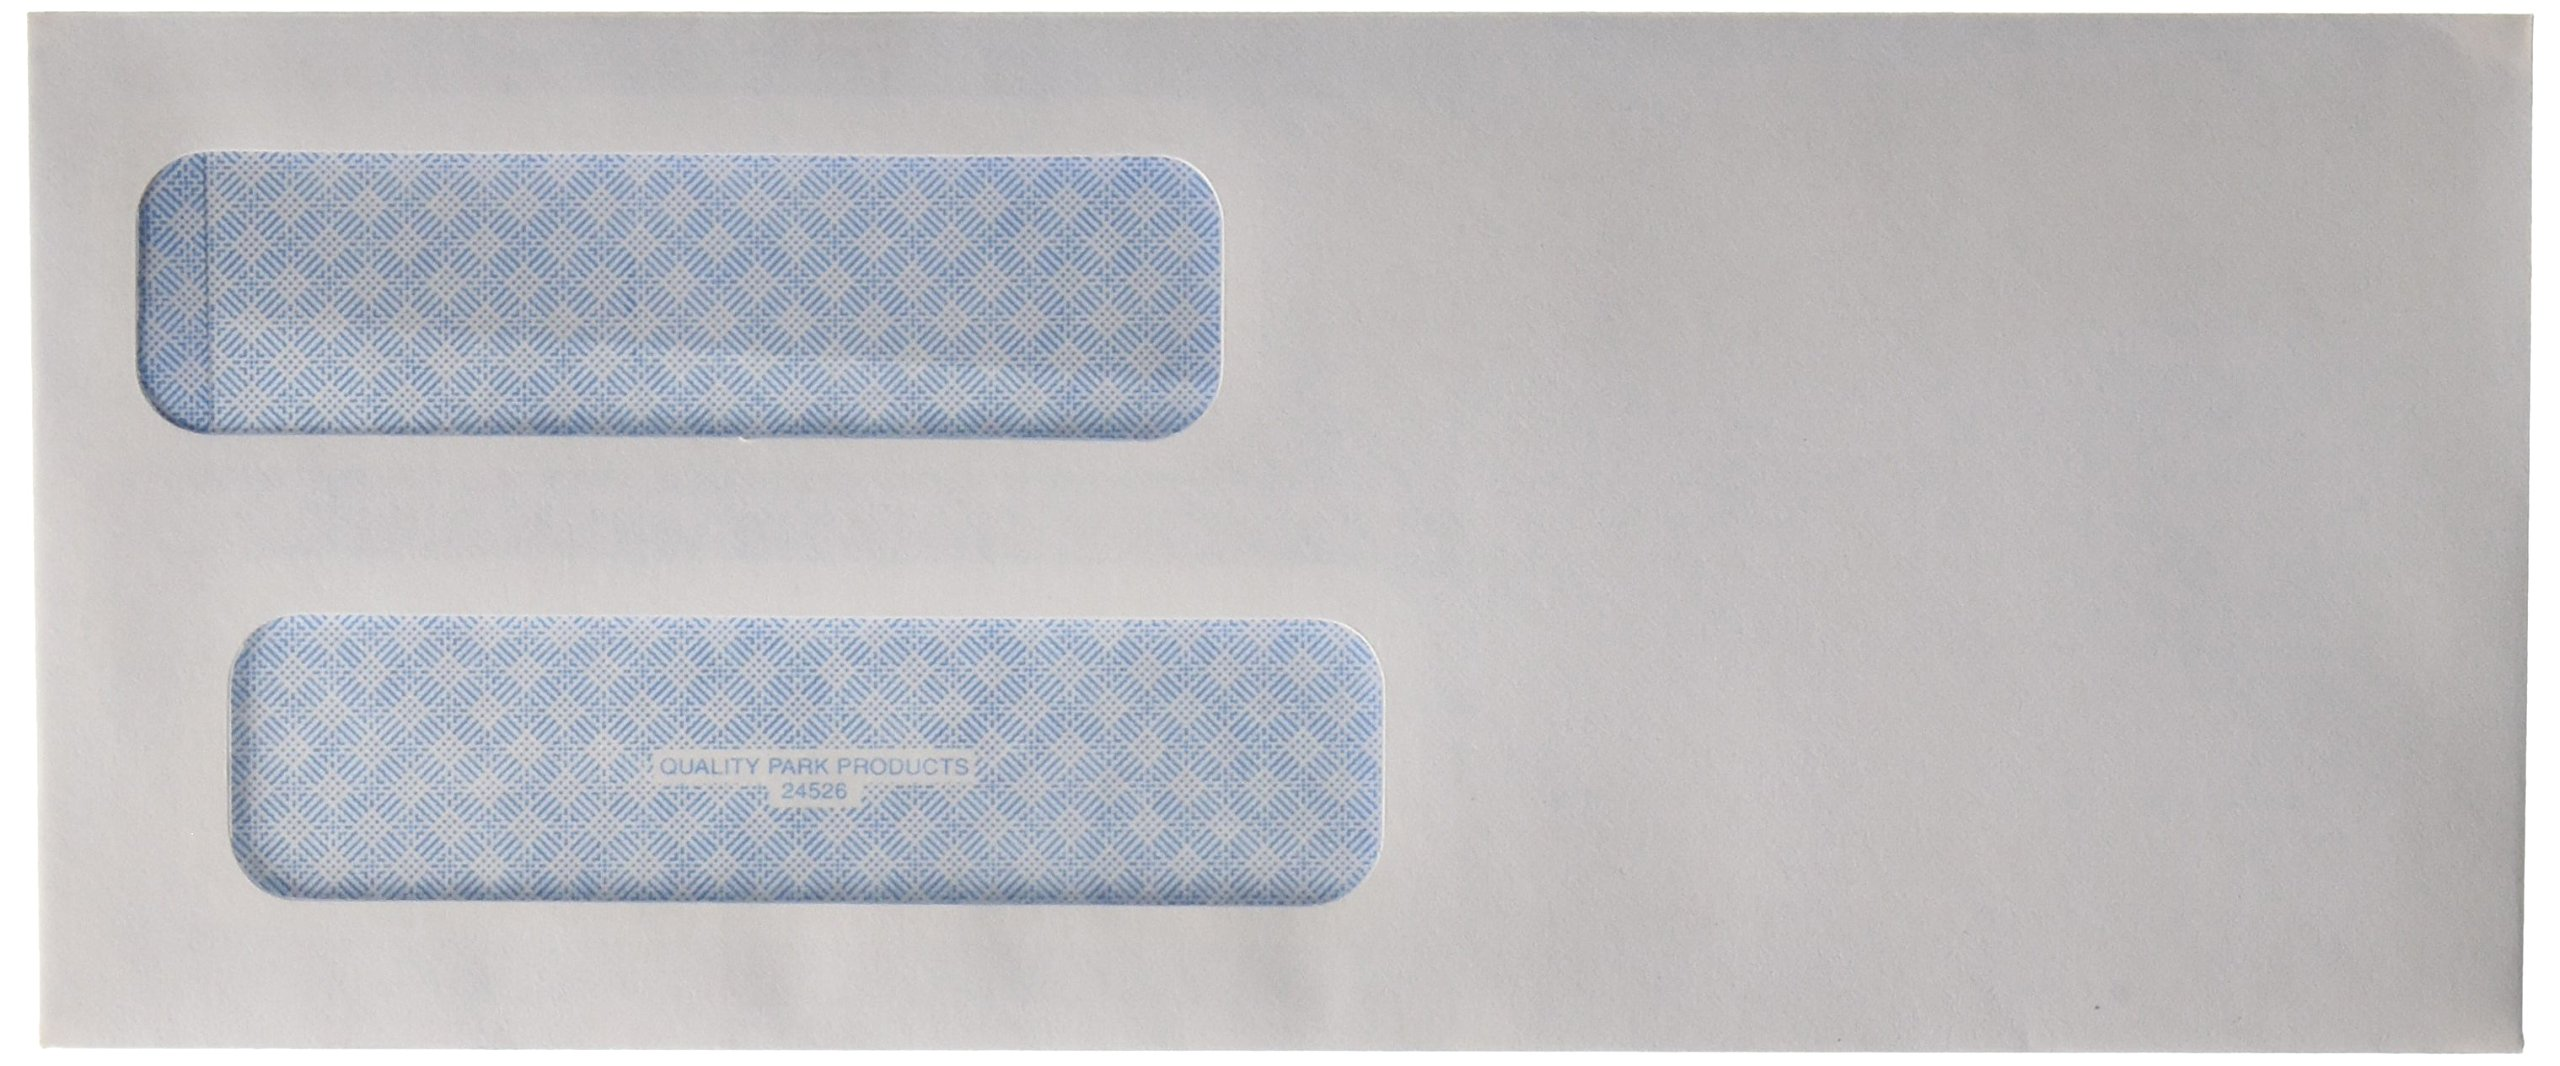 Quality Park #8 Double Window Security Check Envelope, 3.625 x 8.625 Inches, White, 500 Envelopes (24526)